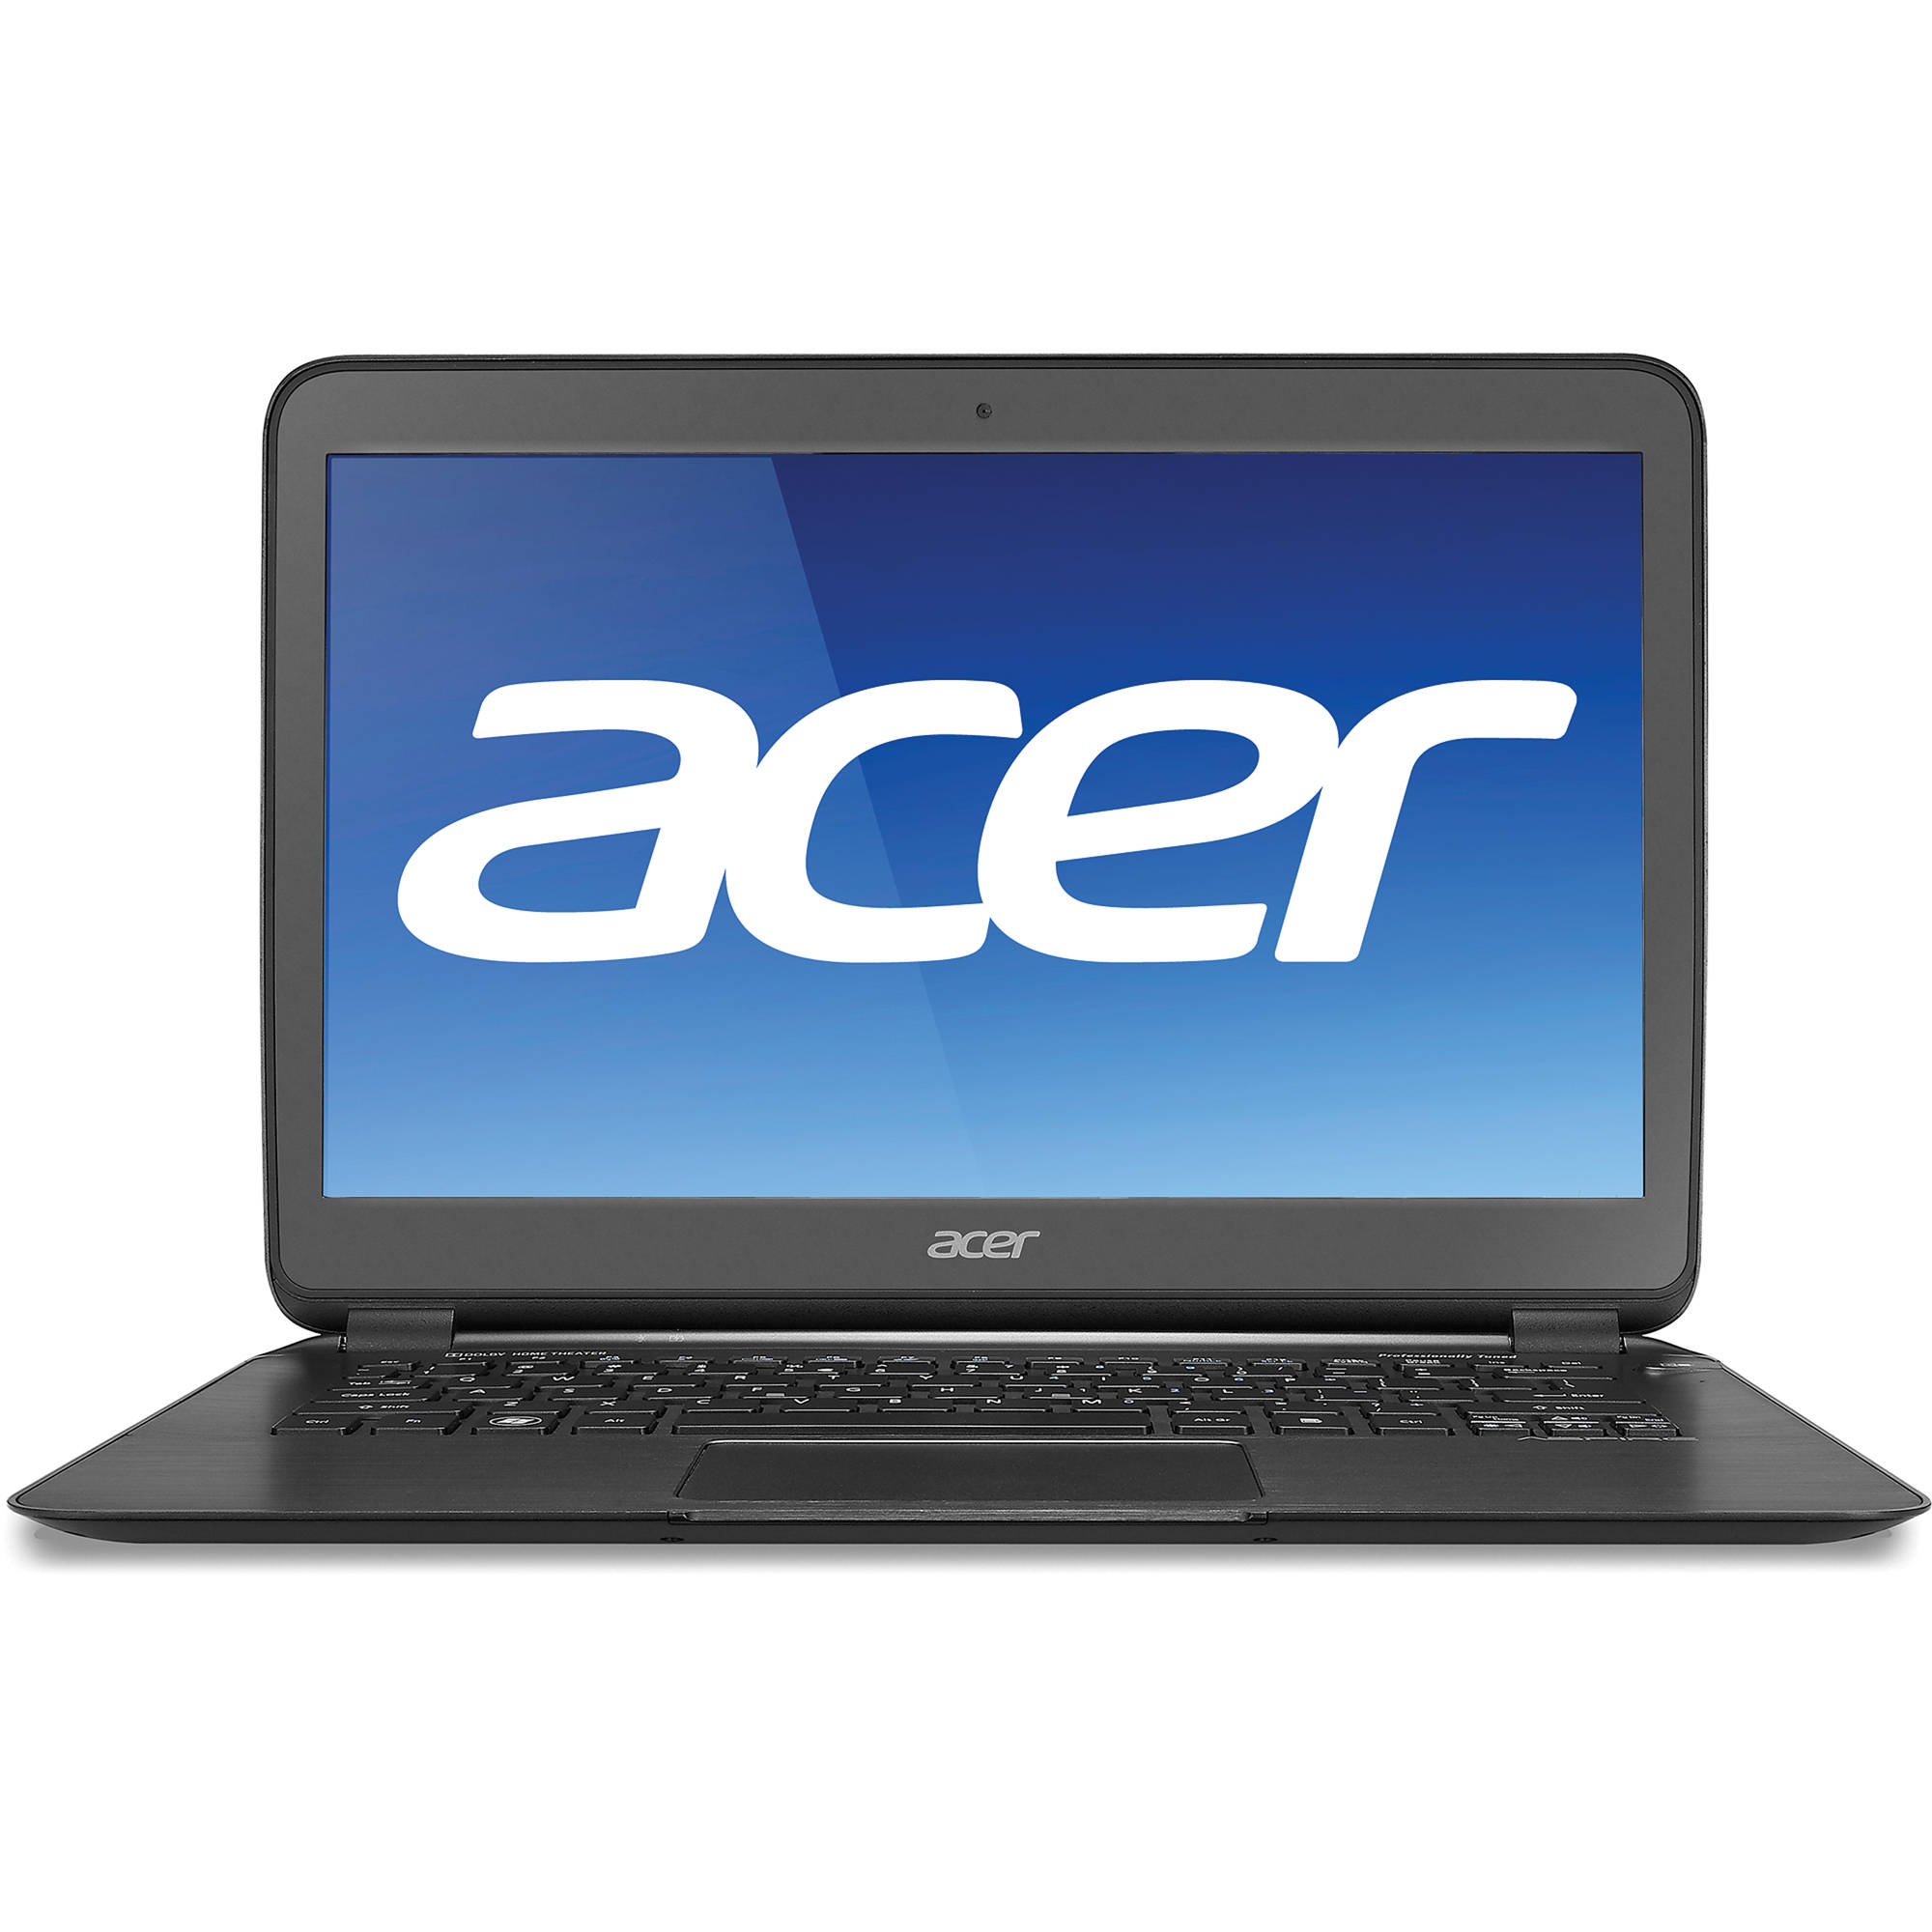 ACER ASPIRE S5-391 INTEL GRAPHICS WINDOWS 8.1 DRIVERS DOWNLOAD